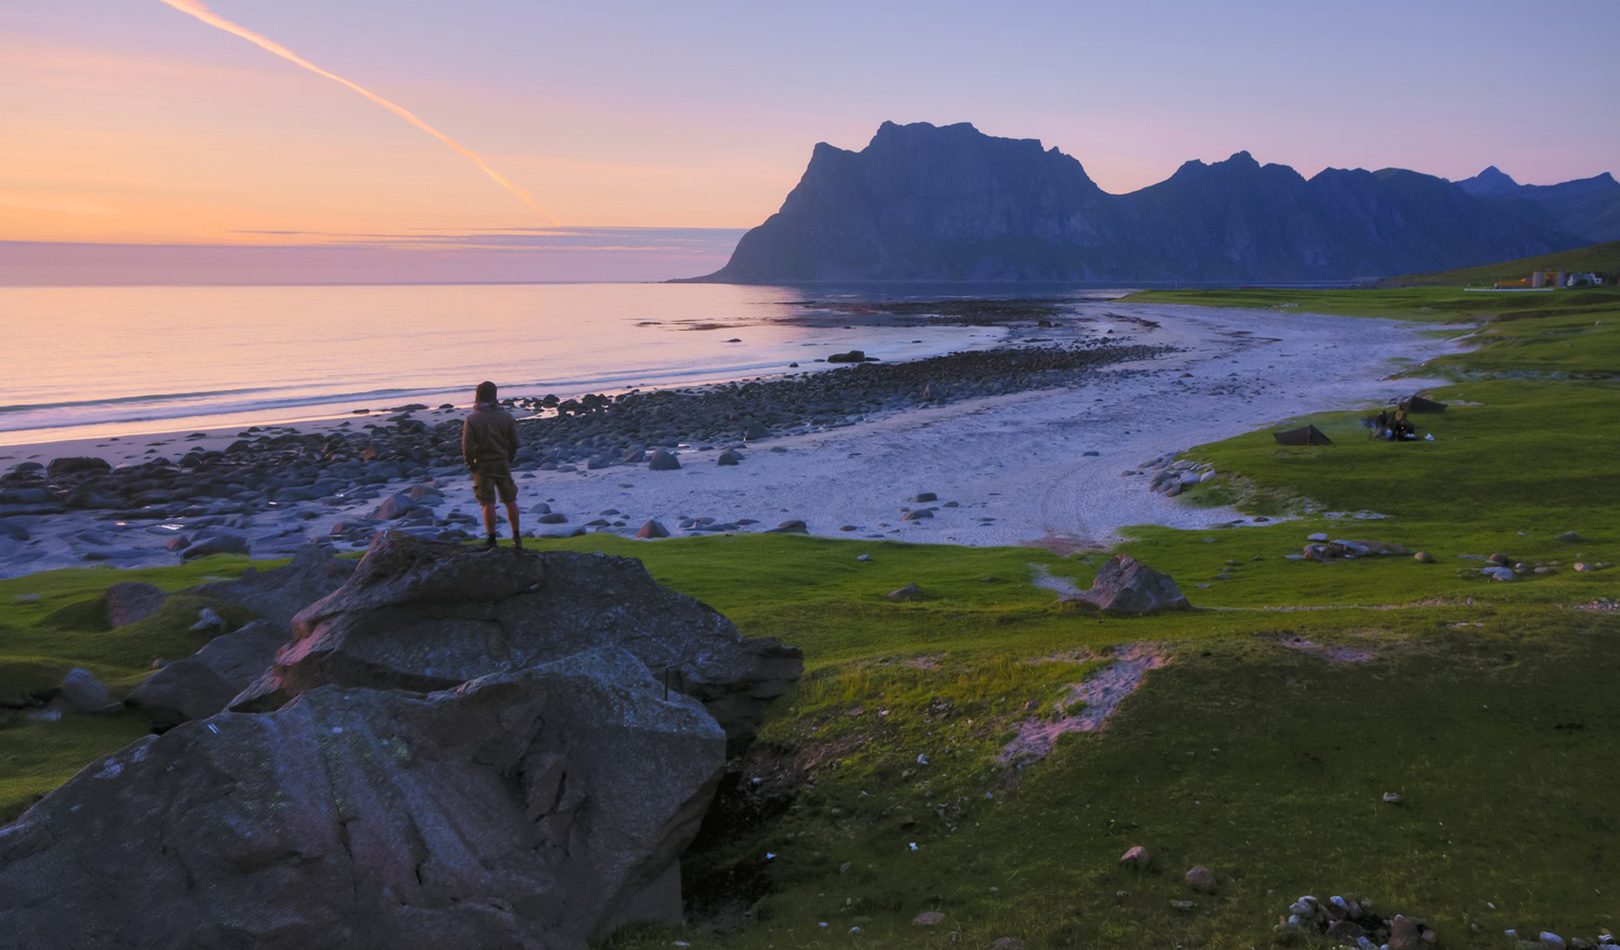 Beach, mountain and ocean at sunset in Lofoten.